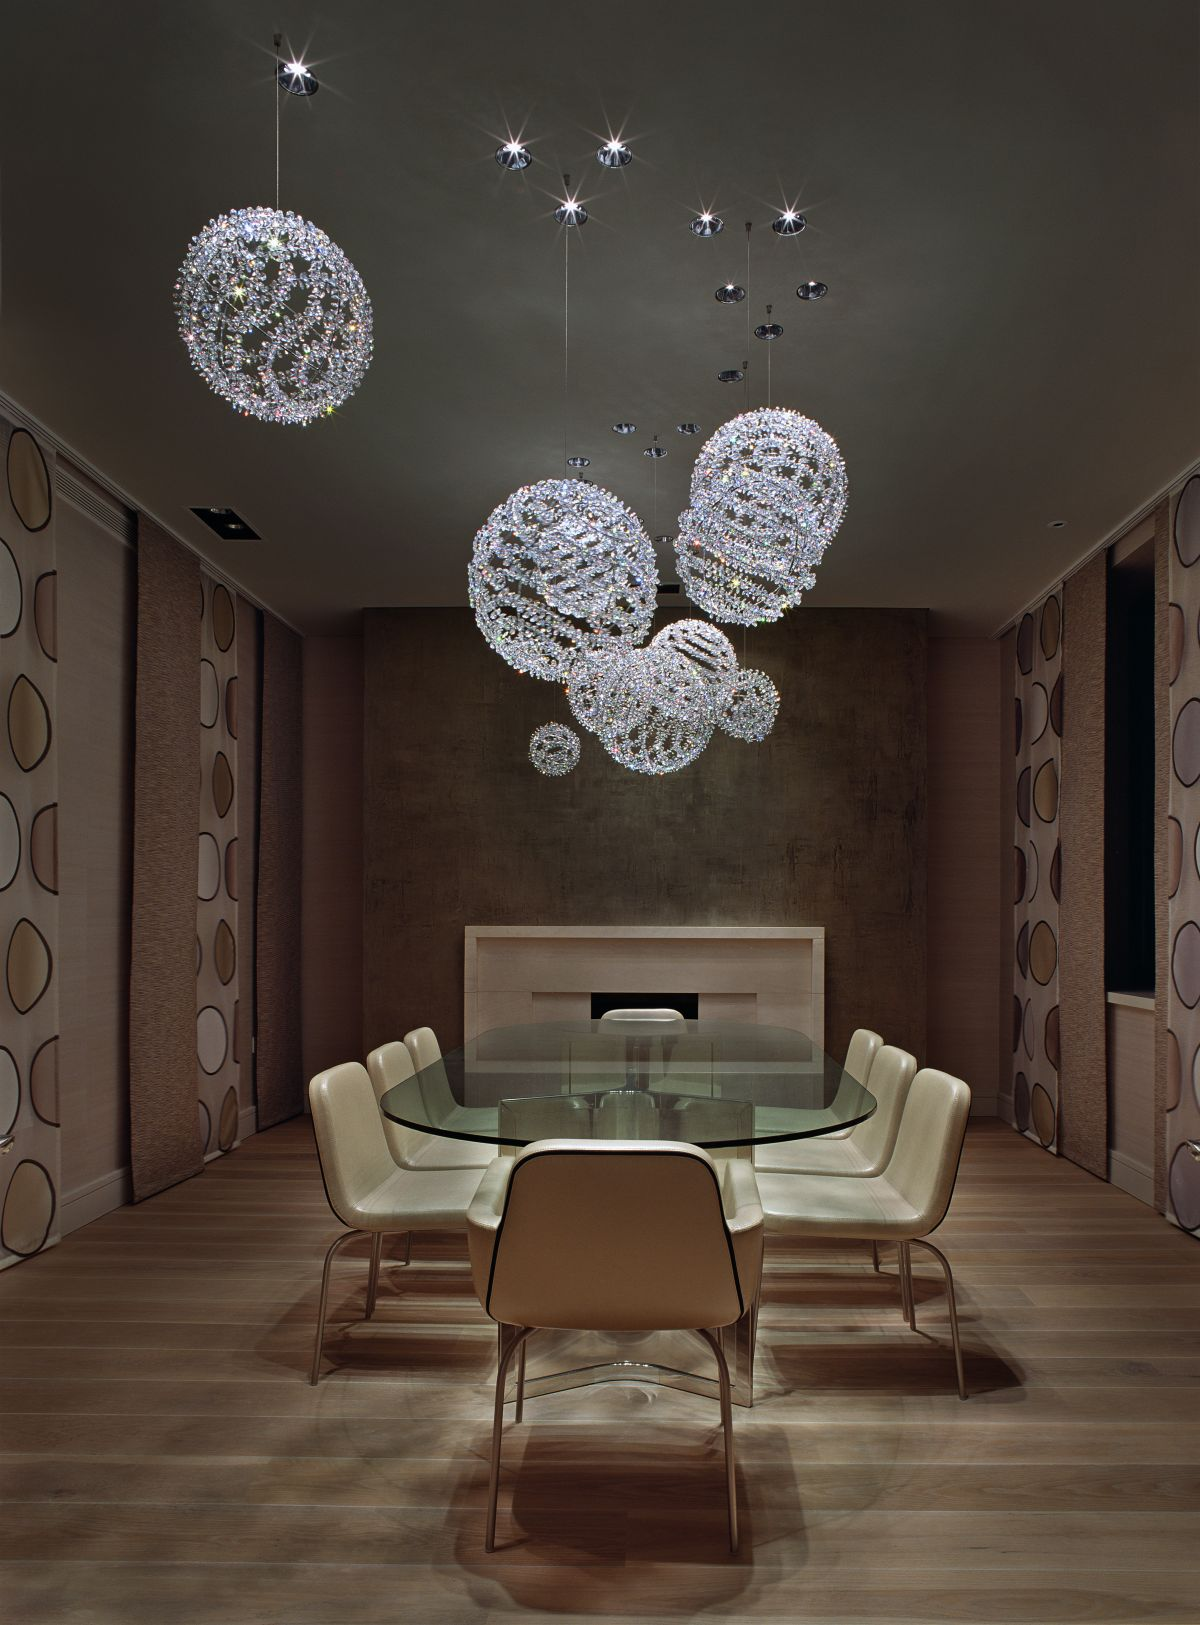 Grouping chandeliers